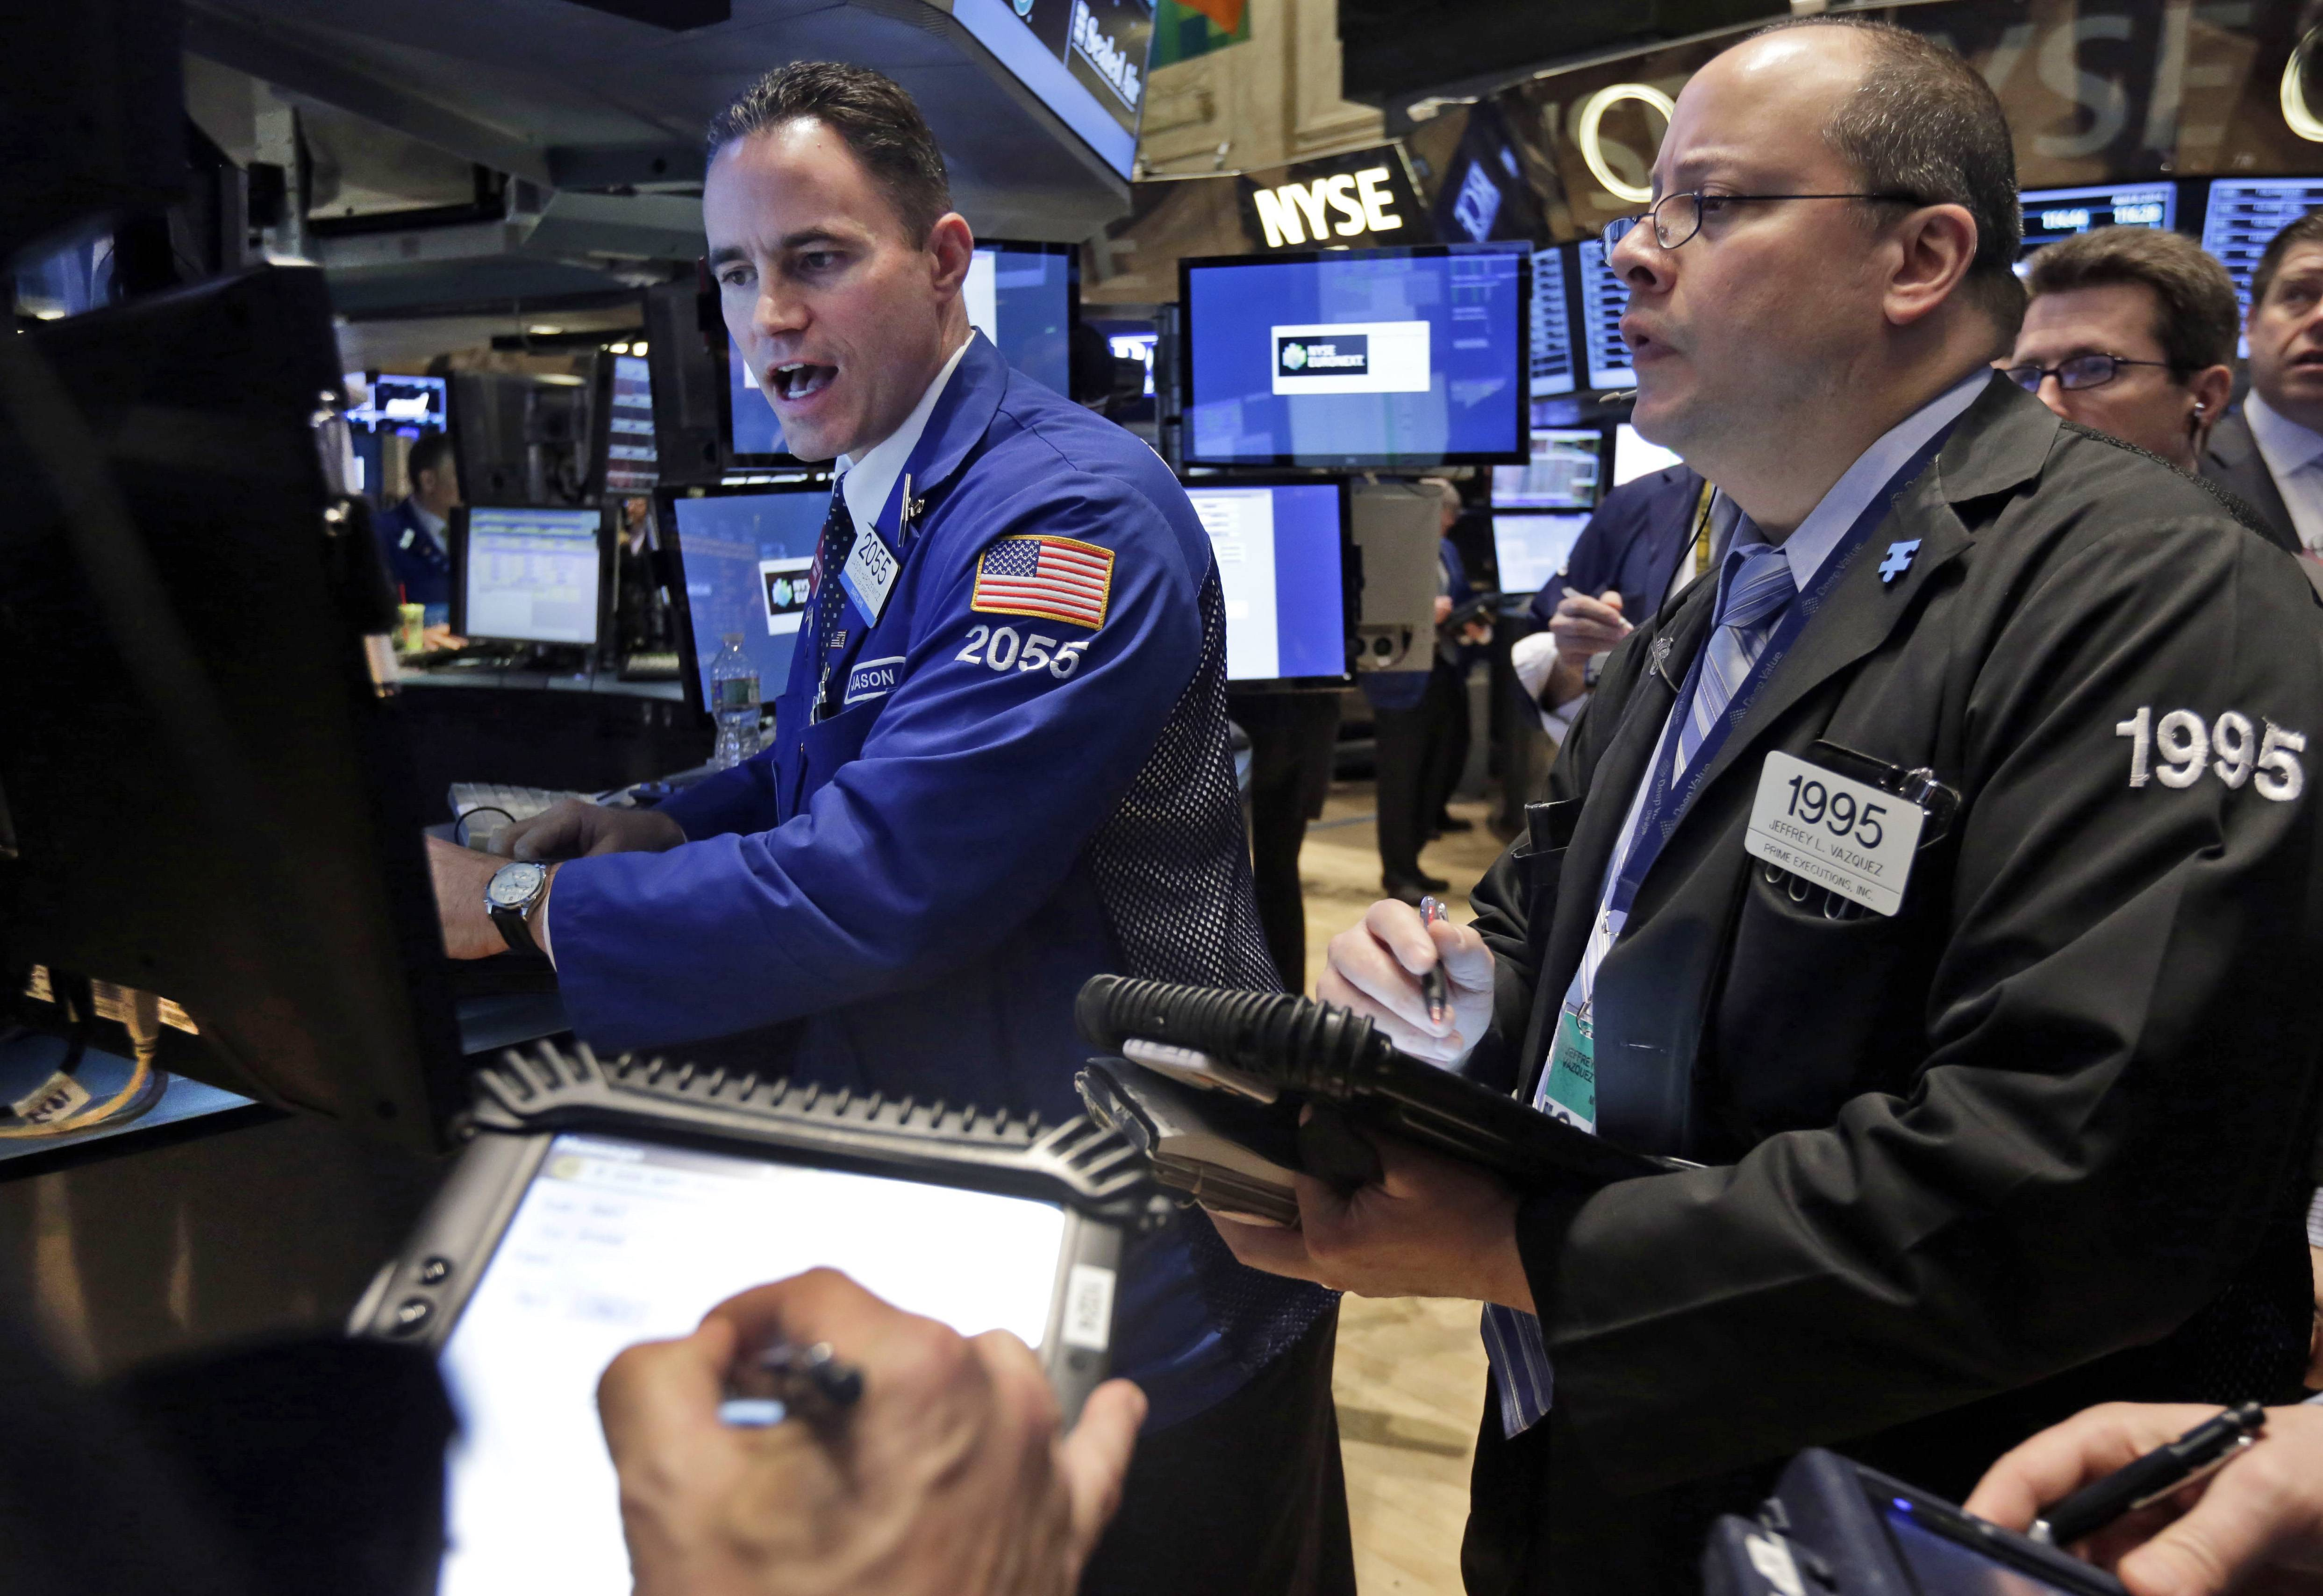 U.S. stocks rallied Wednesday, with technology shares gaining the most in two months, as minutes from the Federal Reserve's last meeting eased concern about the timing of future interest-rate increases.